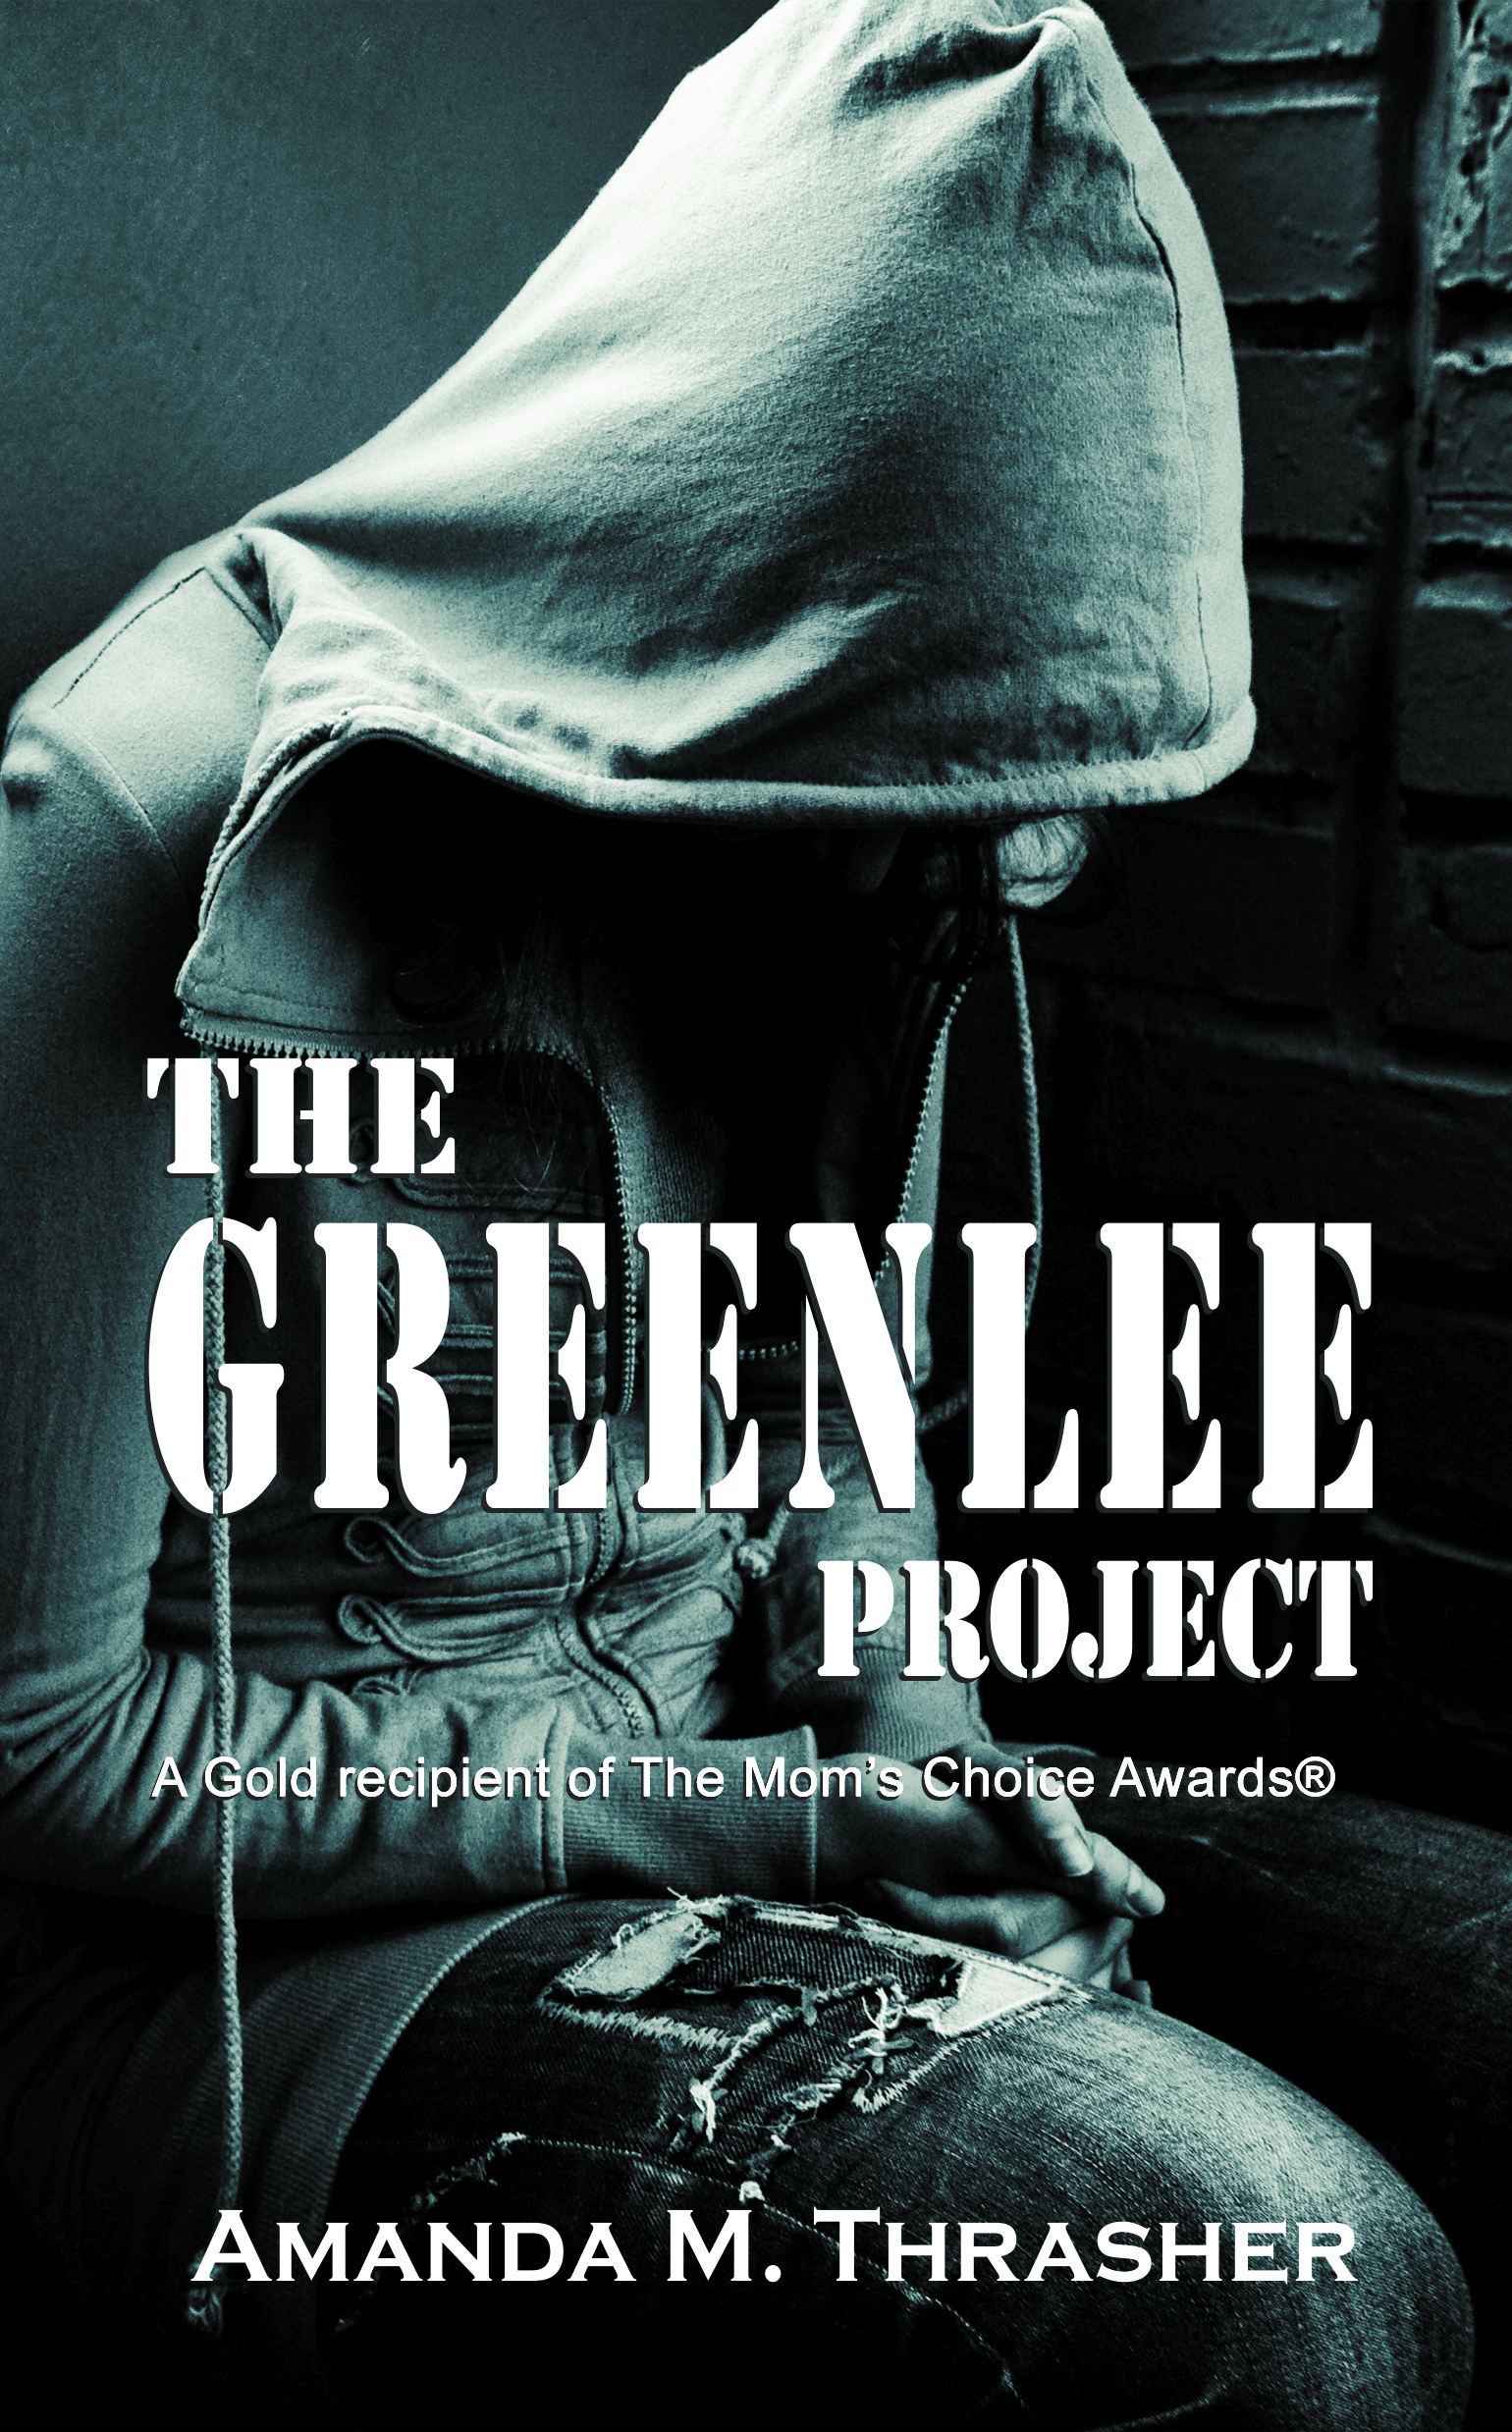 Greenlee Project Discussion